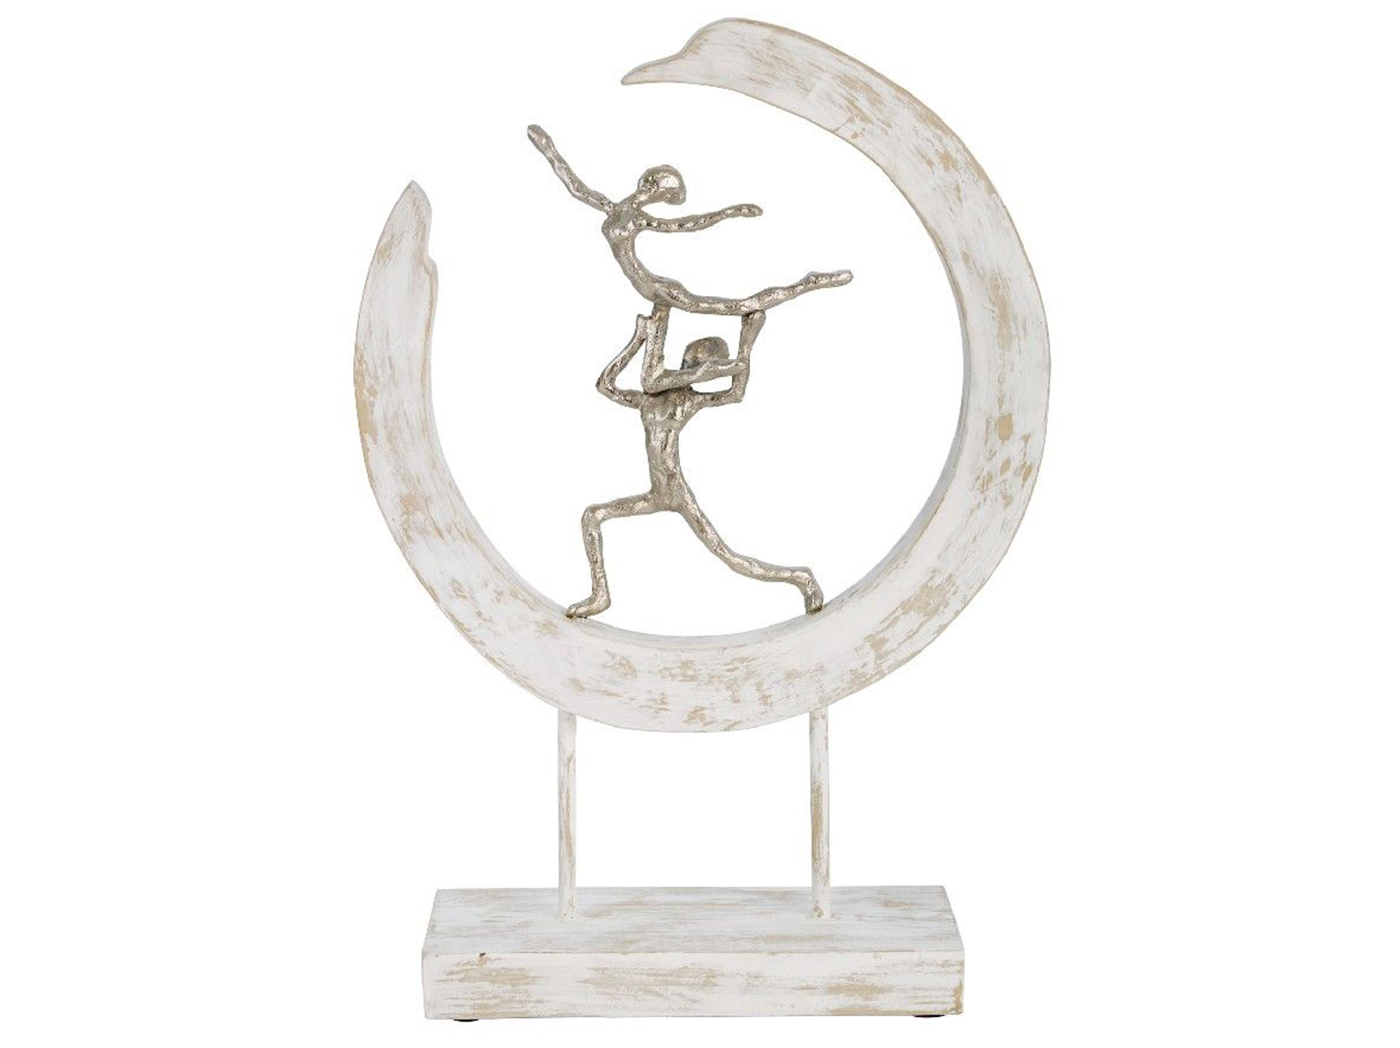 "Dancing Couple In White Washed Wood Ring Decor 13""W x 18.5""H"